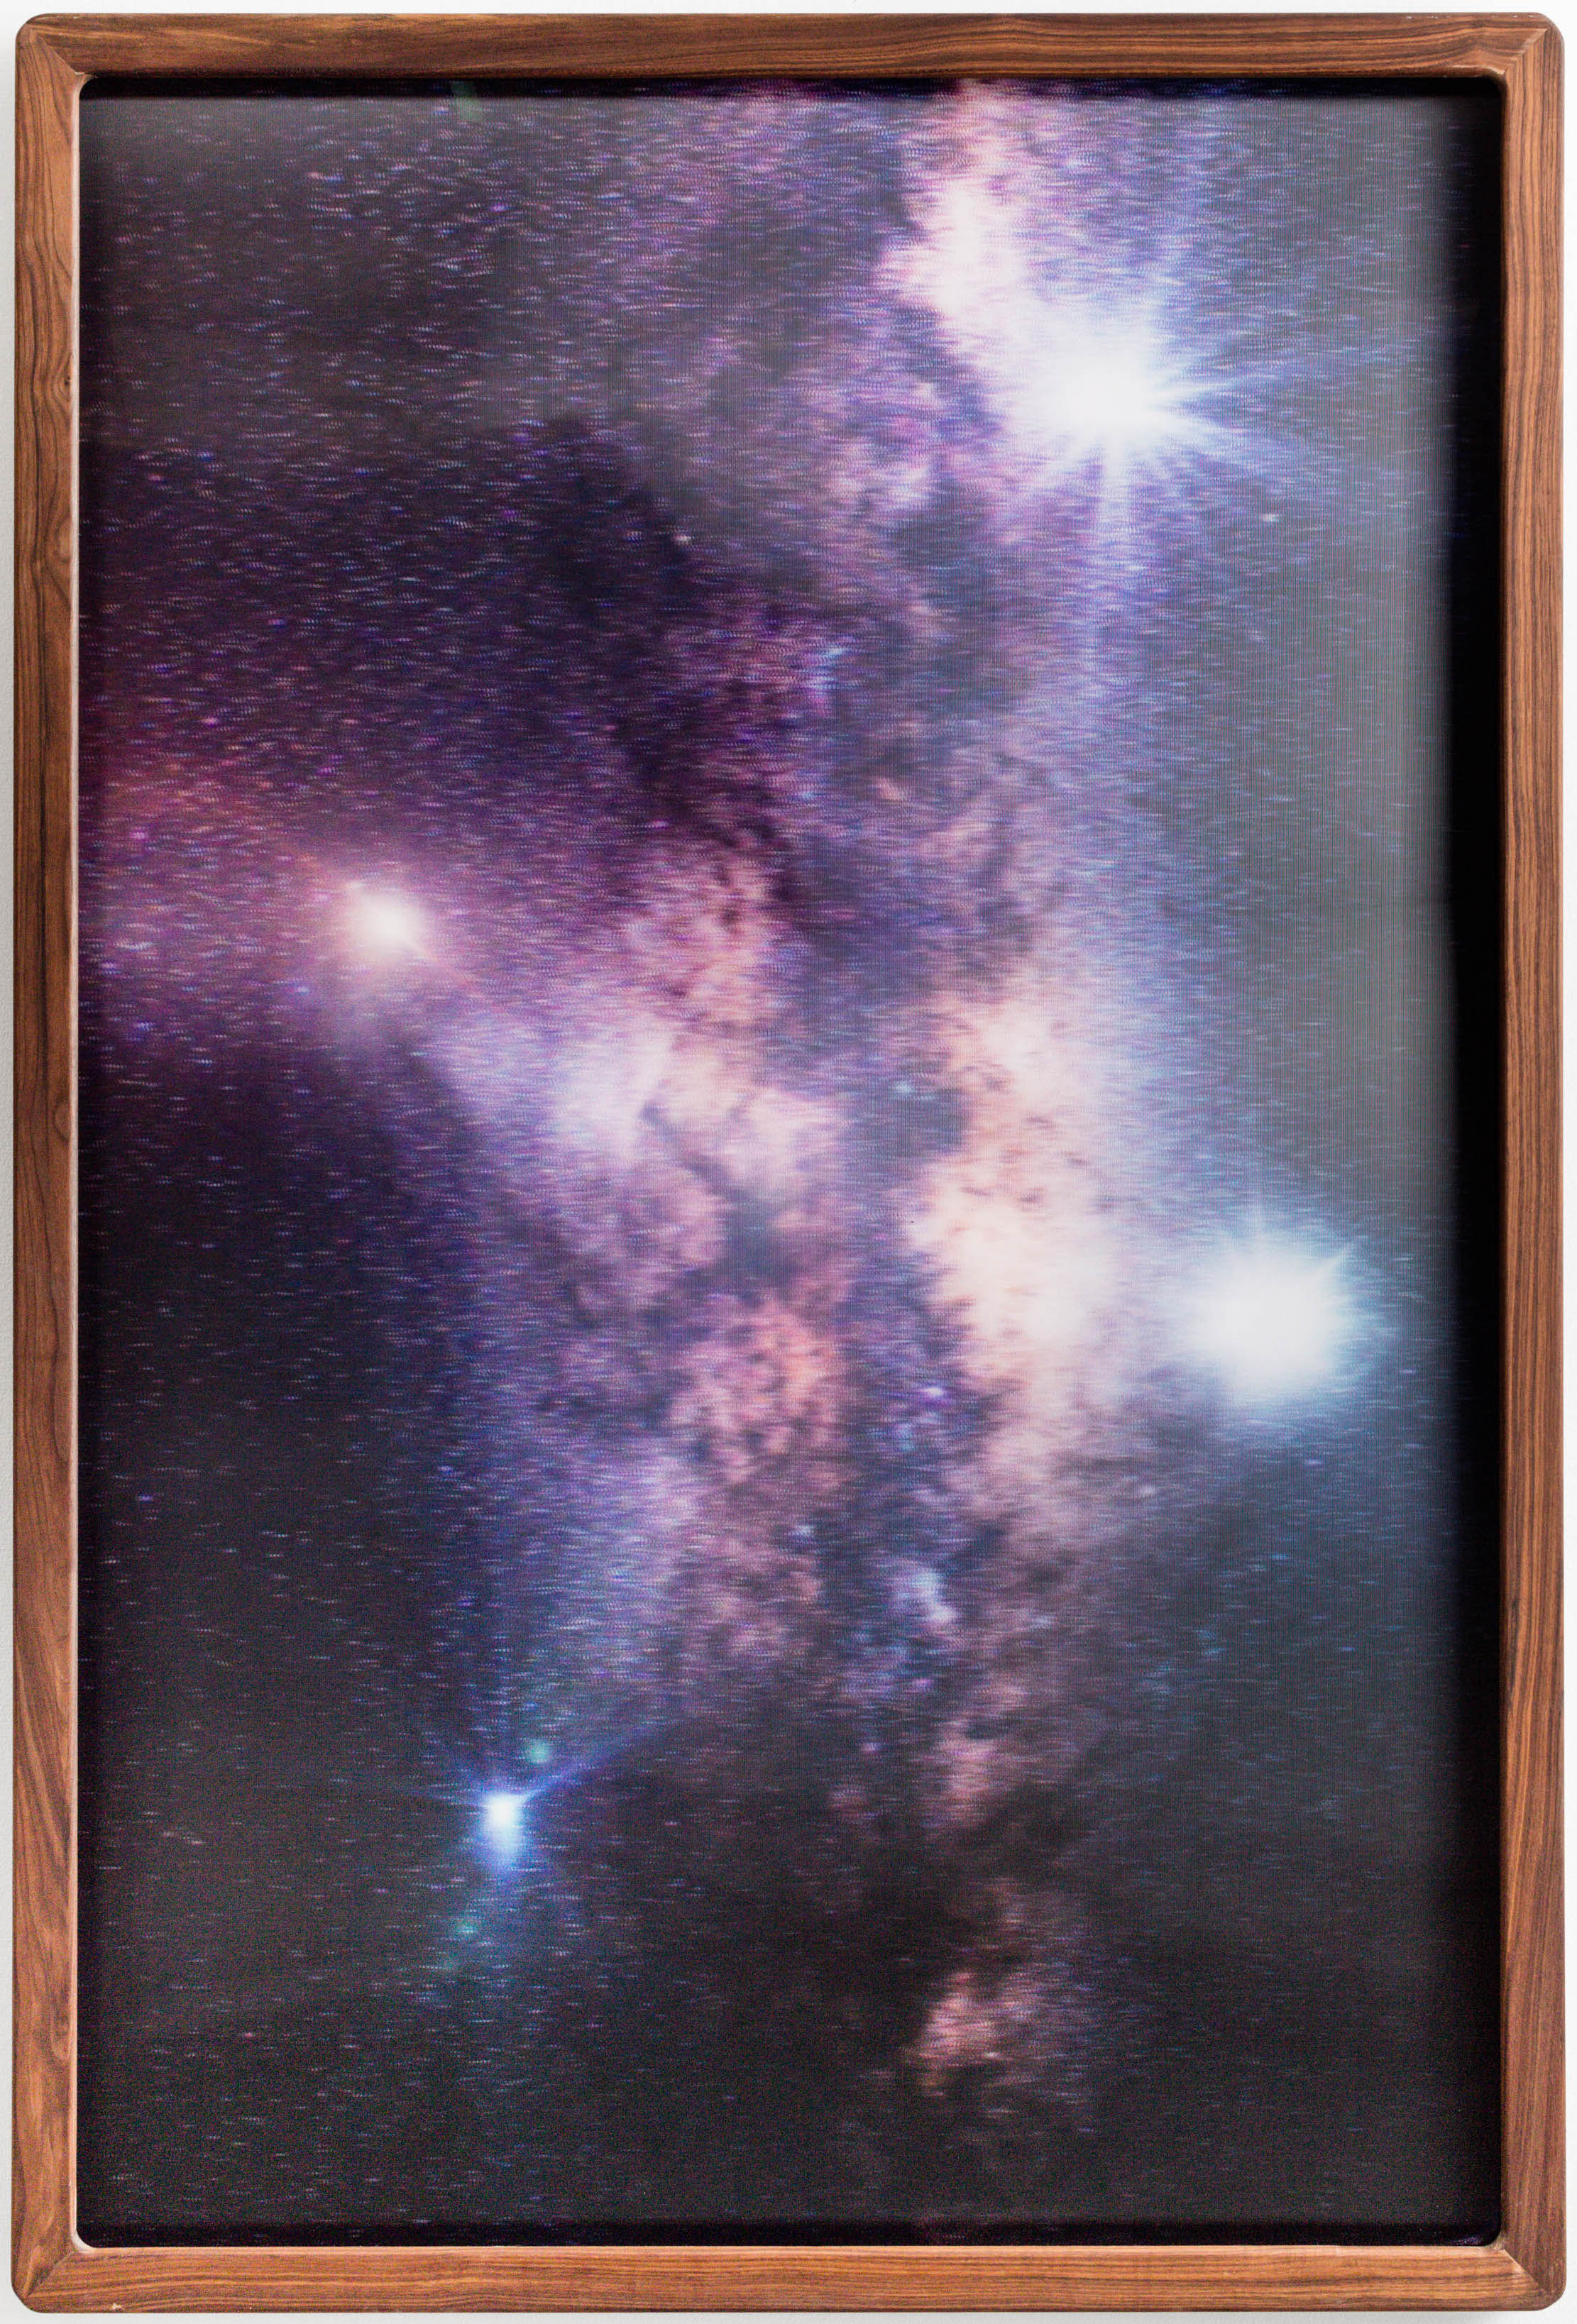 Four Friends, 2018, lenticular print, museum glass, walnut frame, 185 x 125 cm, edition of 2